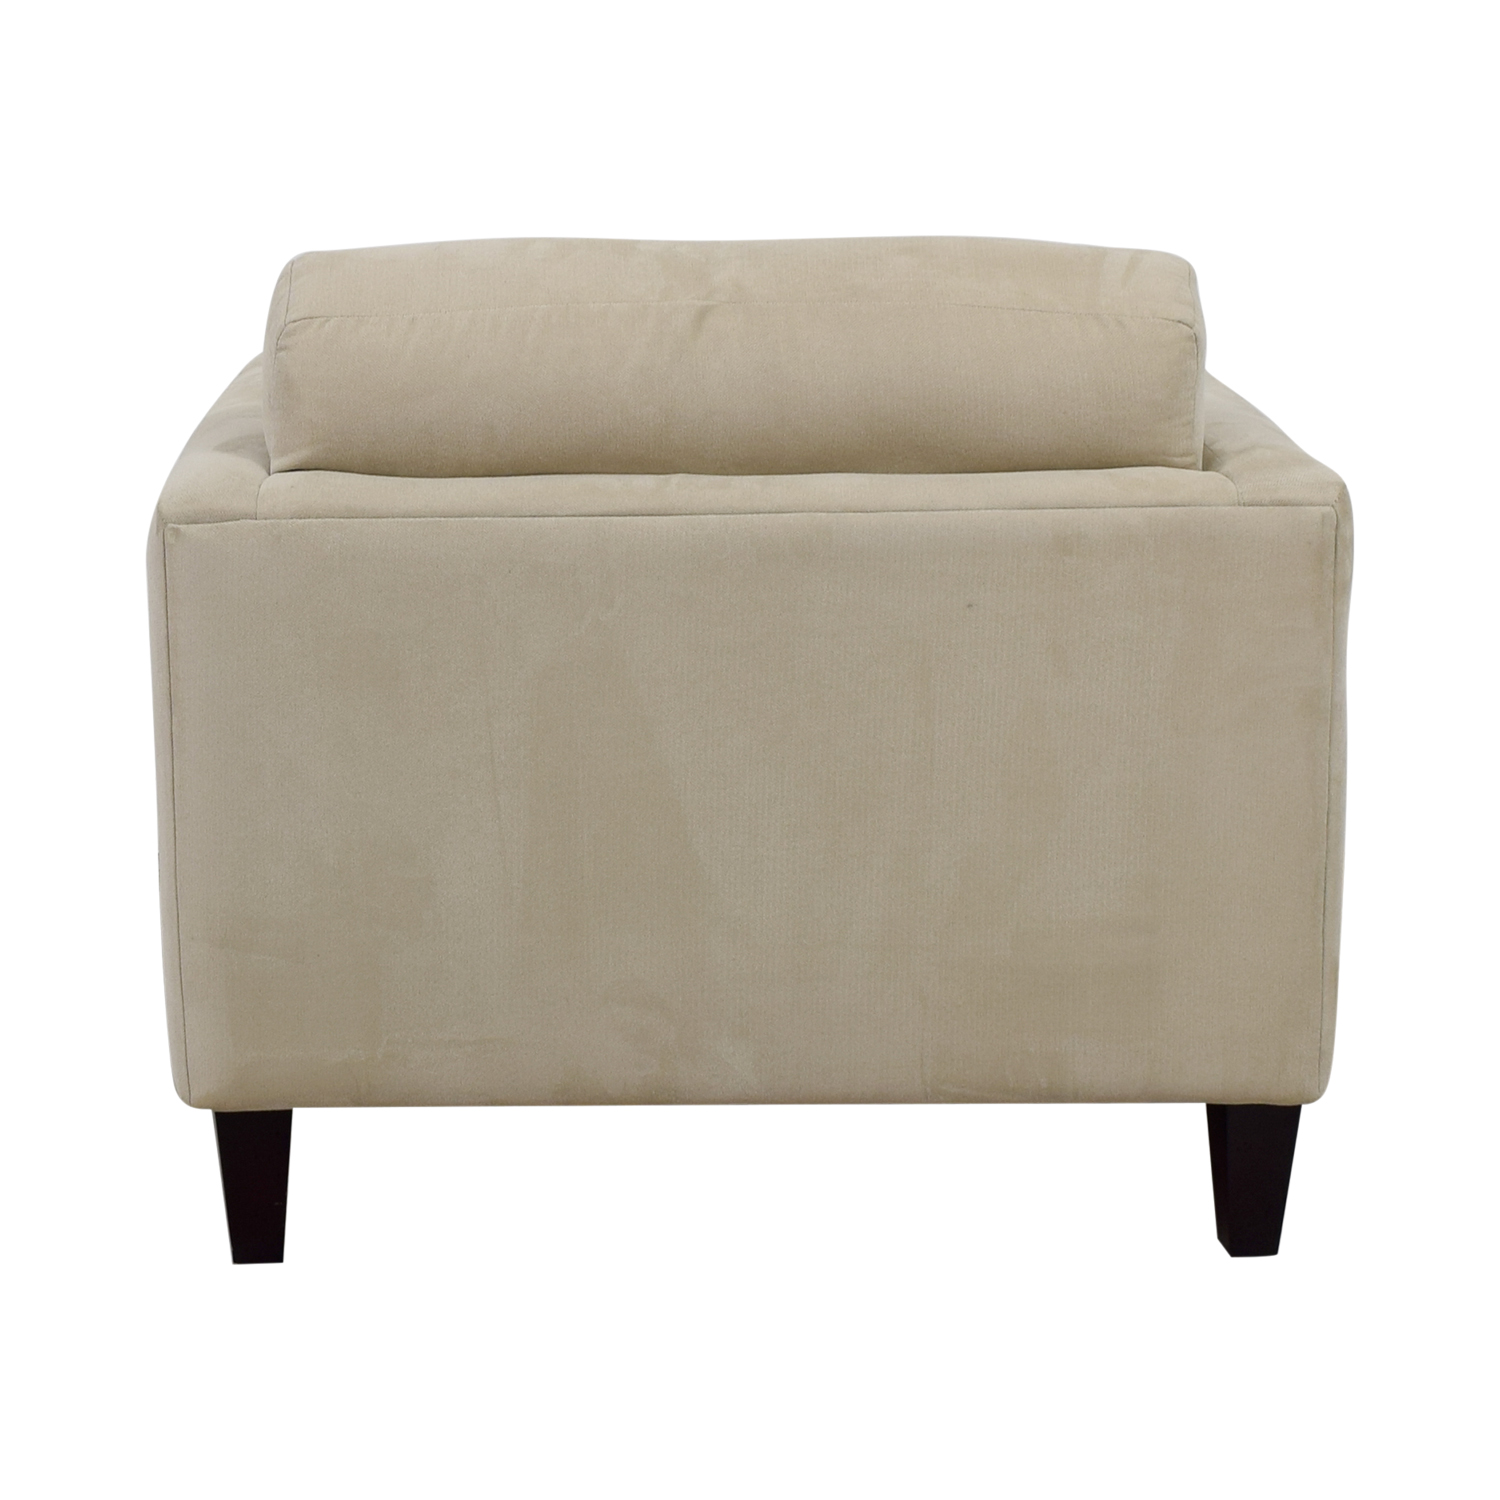 Macy's Macy's Beige Tufted Accent Armchair discount